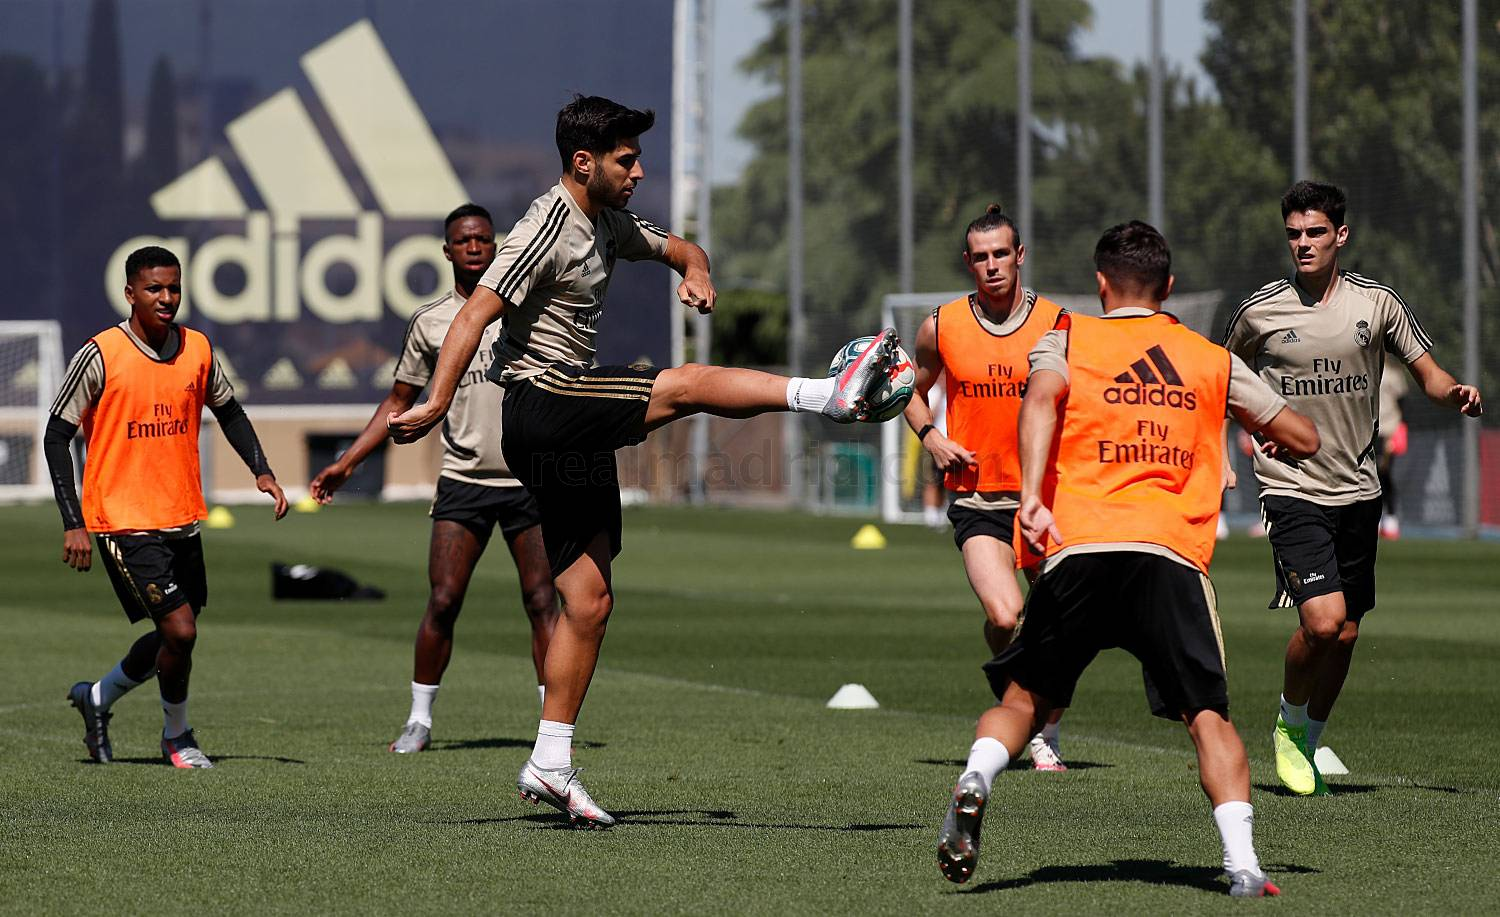 Real Madrid - Entrenamiento del Real Madrid  - 20-06-2020